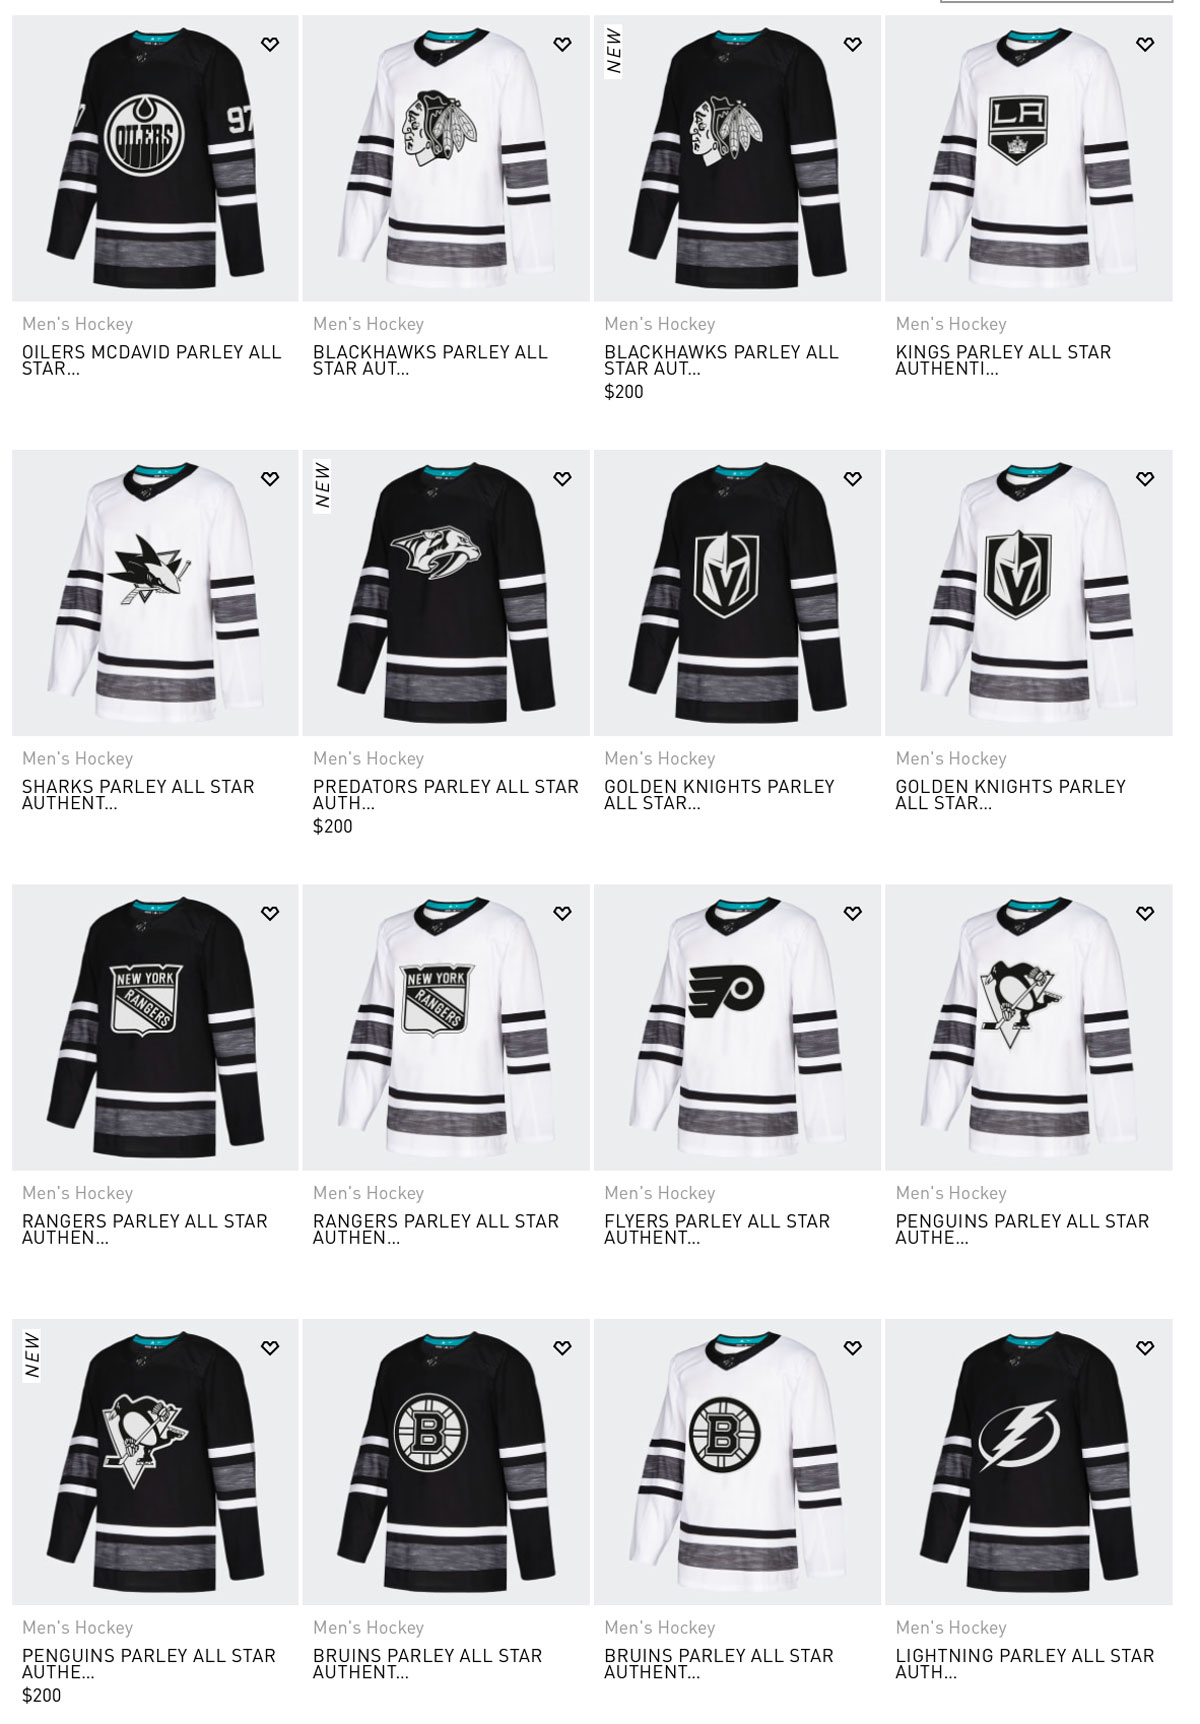 21312f119 The Adidas jerseys run for $200 a piece while a normal-fabric Fanatics  jersey will be $140.